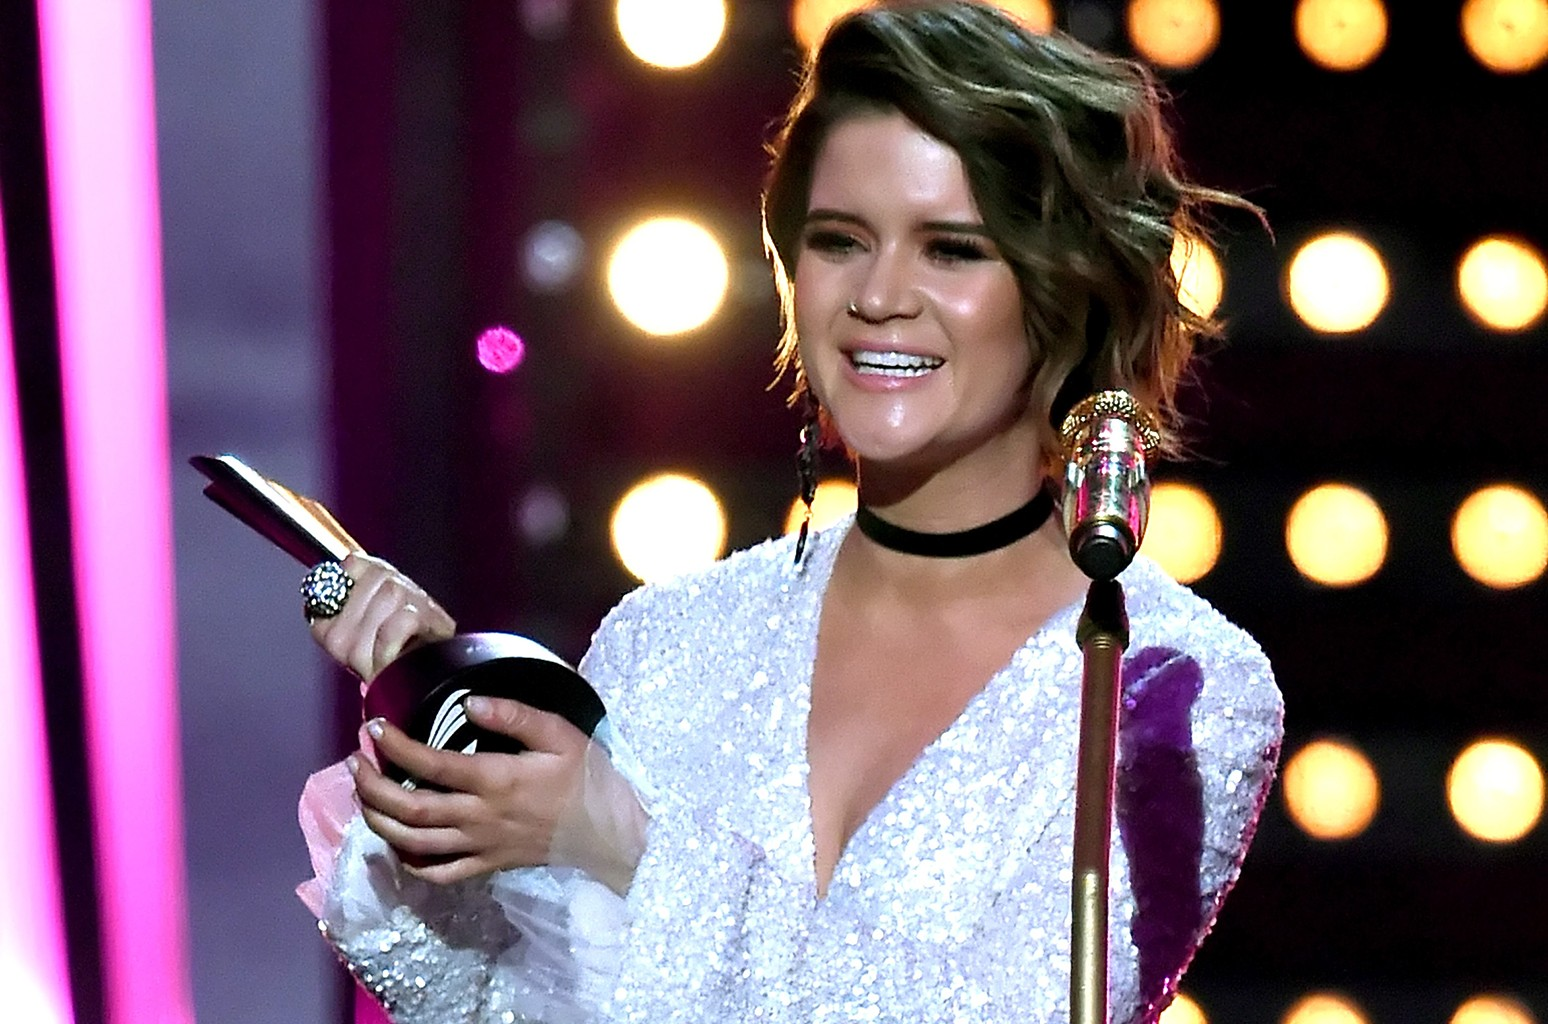 Maren Morris performs onstage during the 52nd Academy Of Country Music Awards at T-Mobile Arena on April 2, 2017 in Las Vegas.